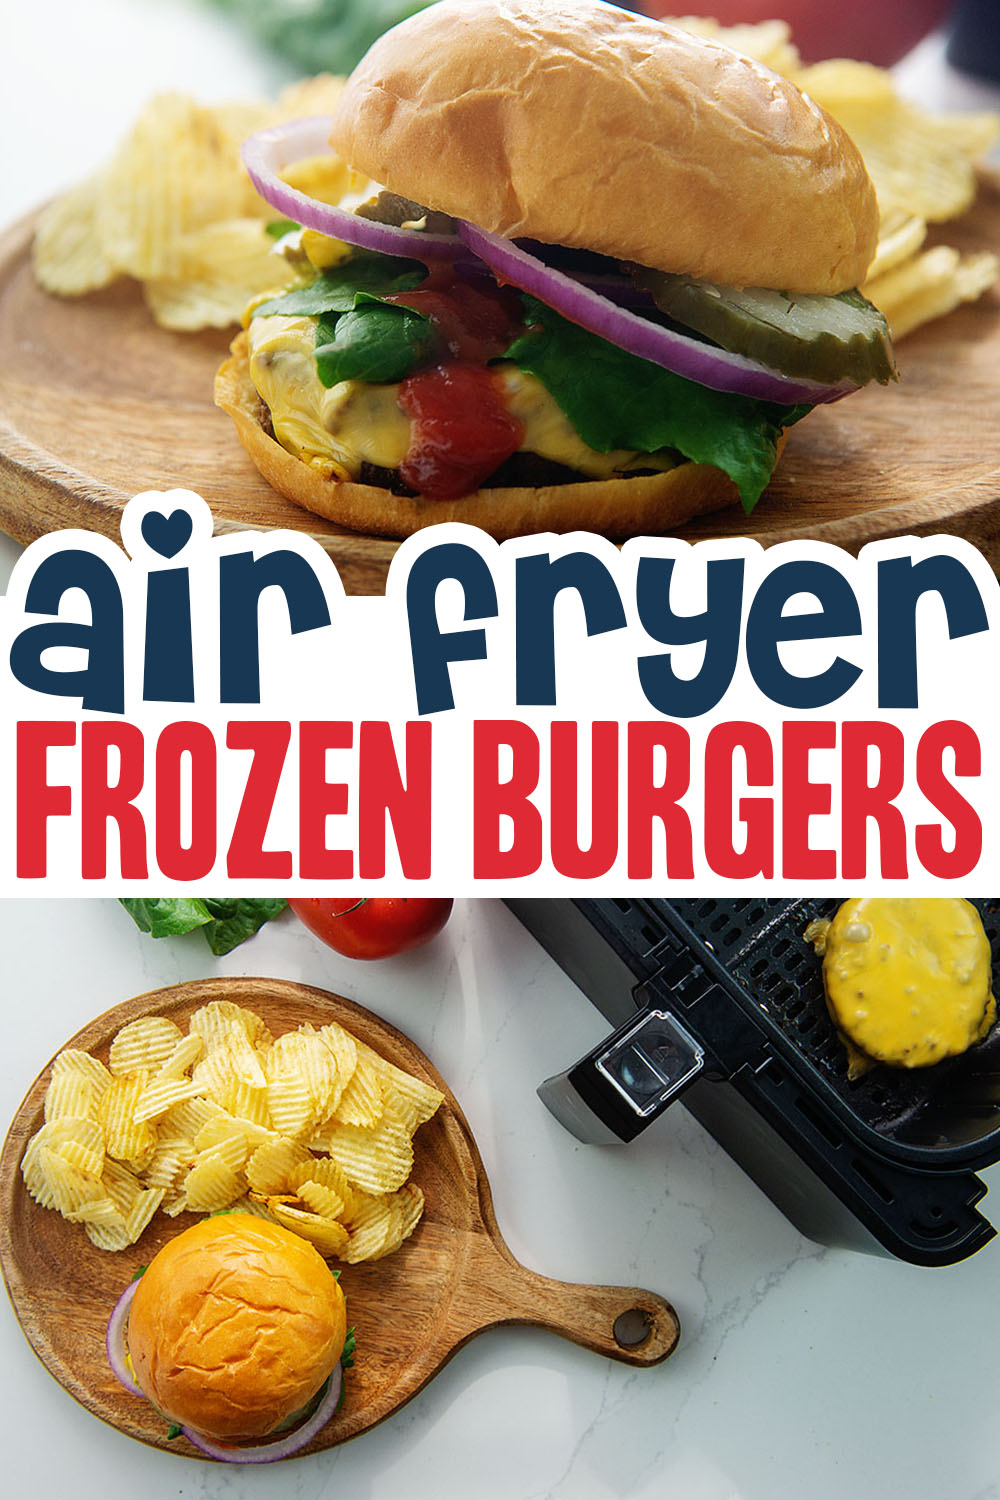 Frozen burgers cook great in an air fryer!  Just toss in the frozen patty, no need to thaw!